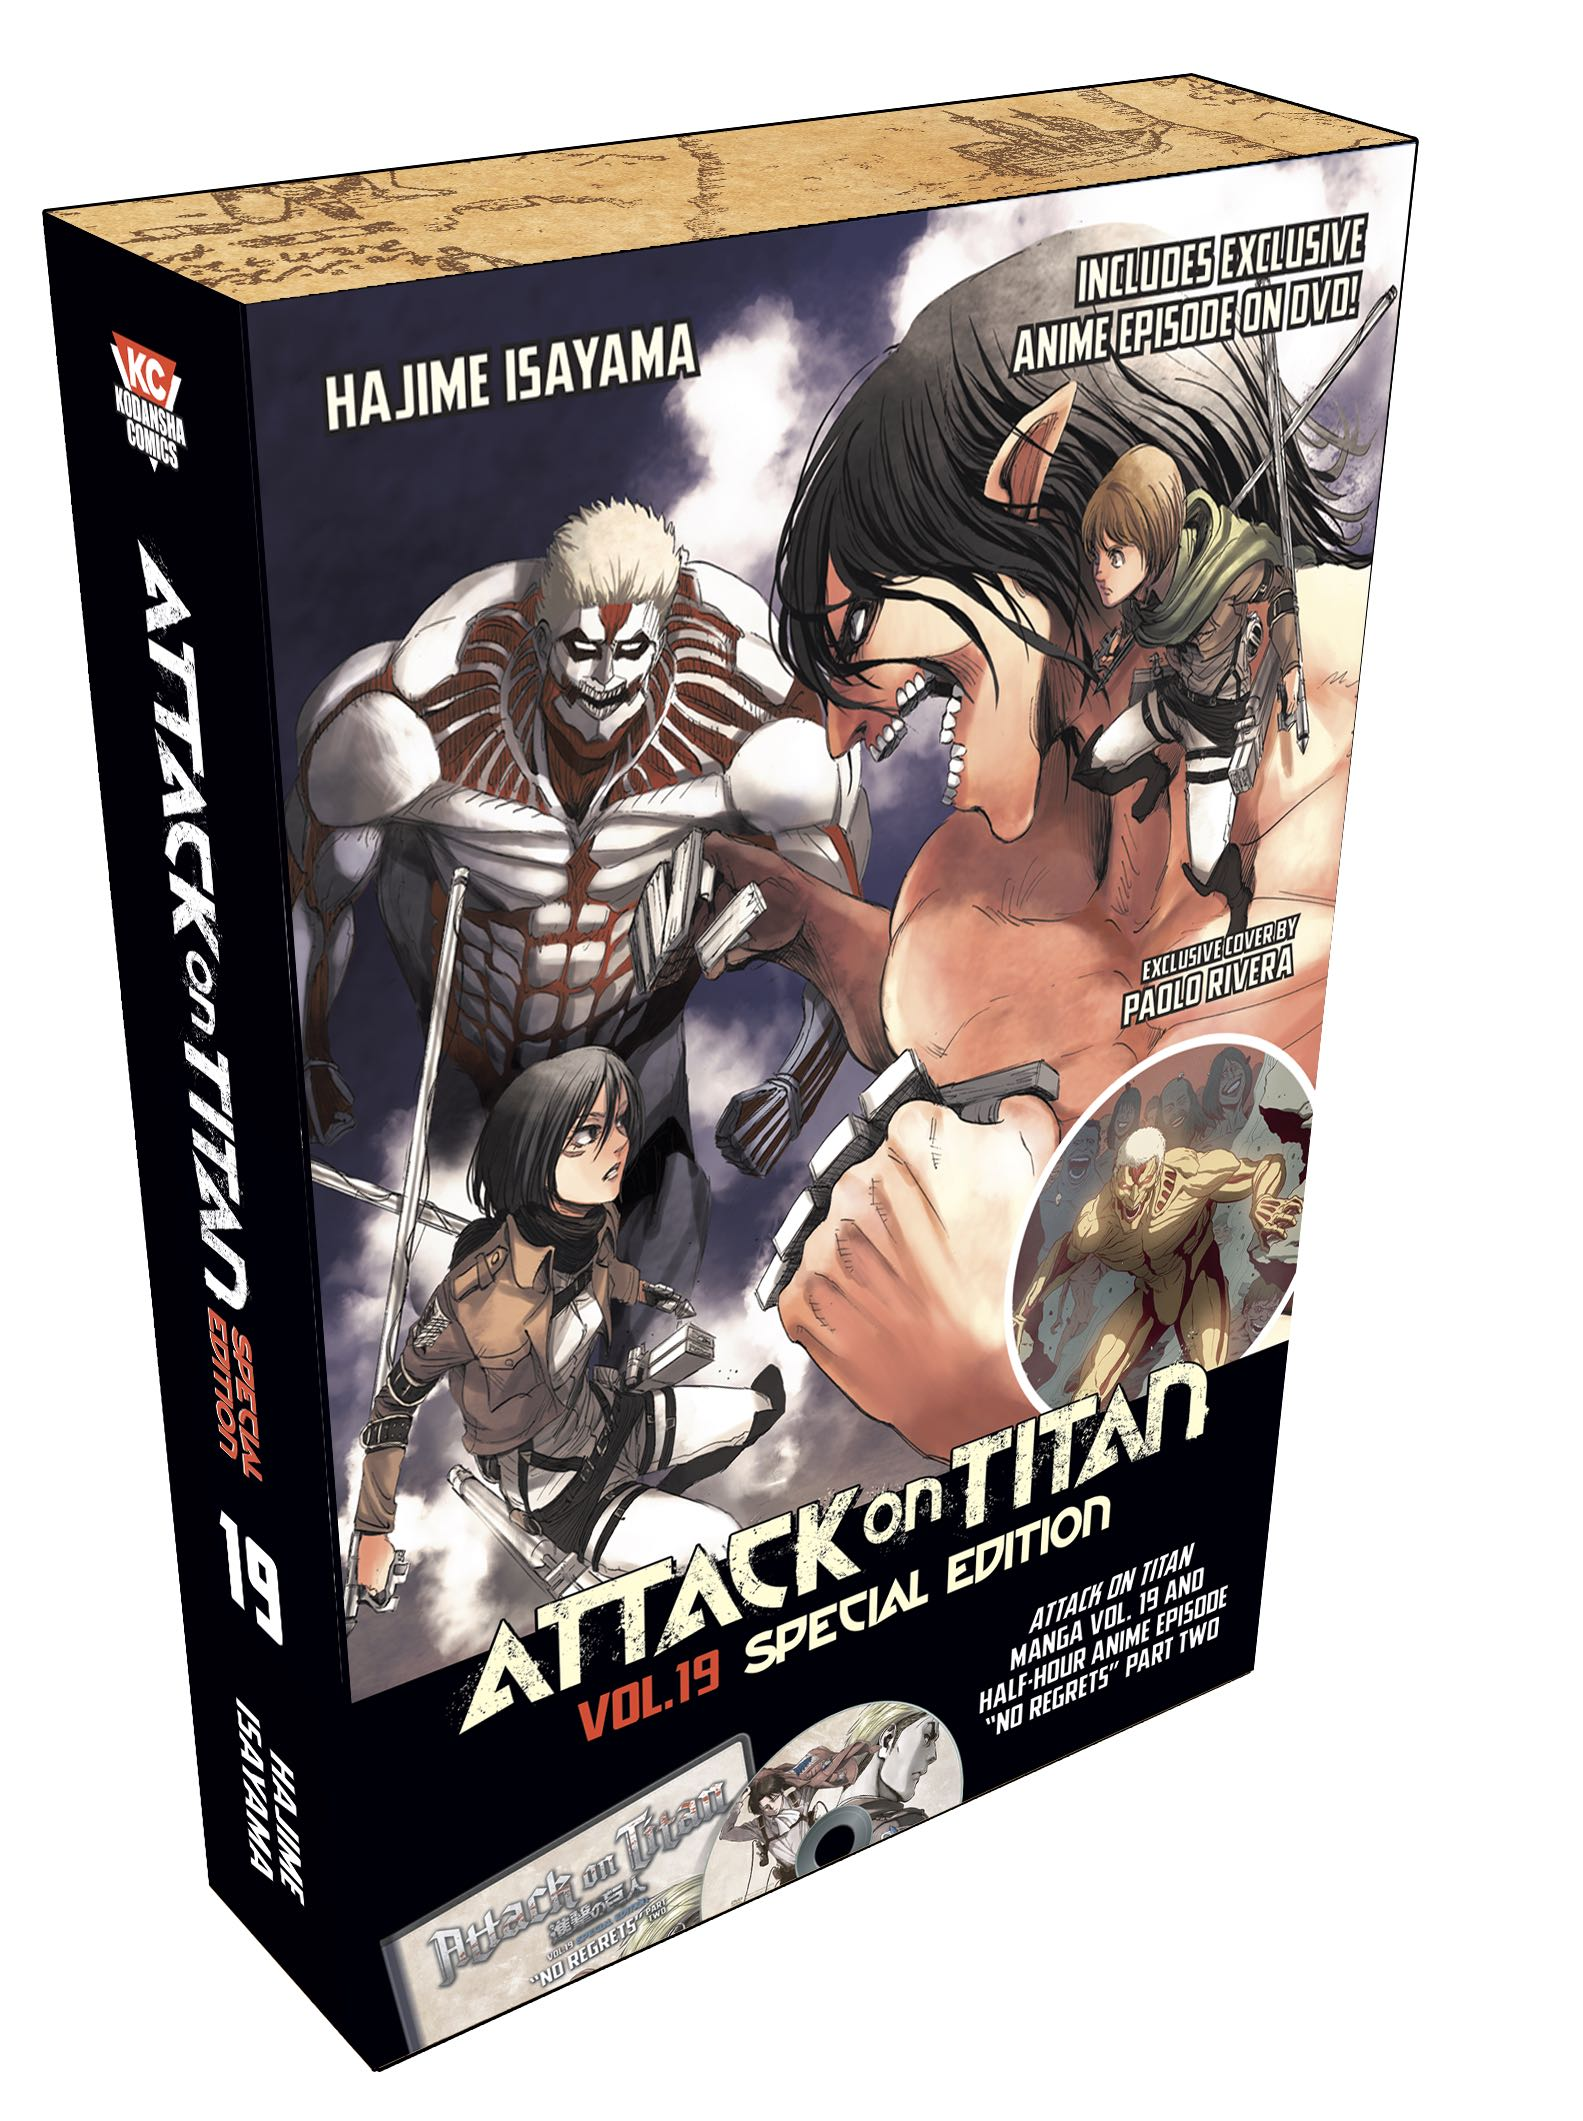 Attack on Titan, Volume 19 Special Edition